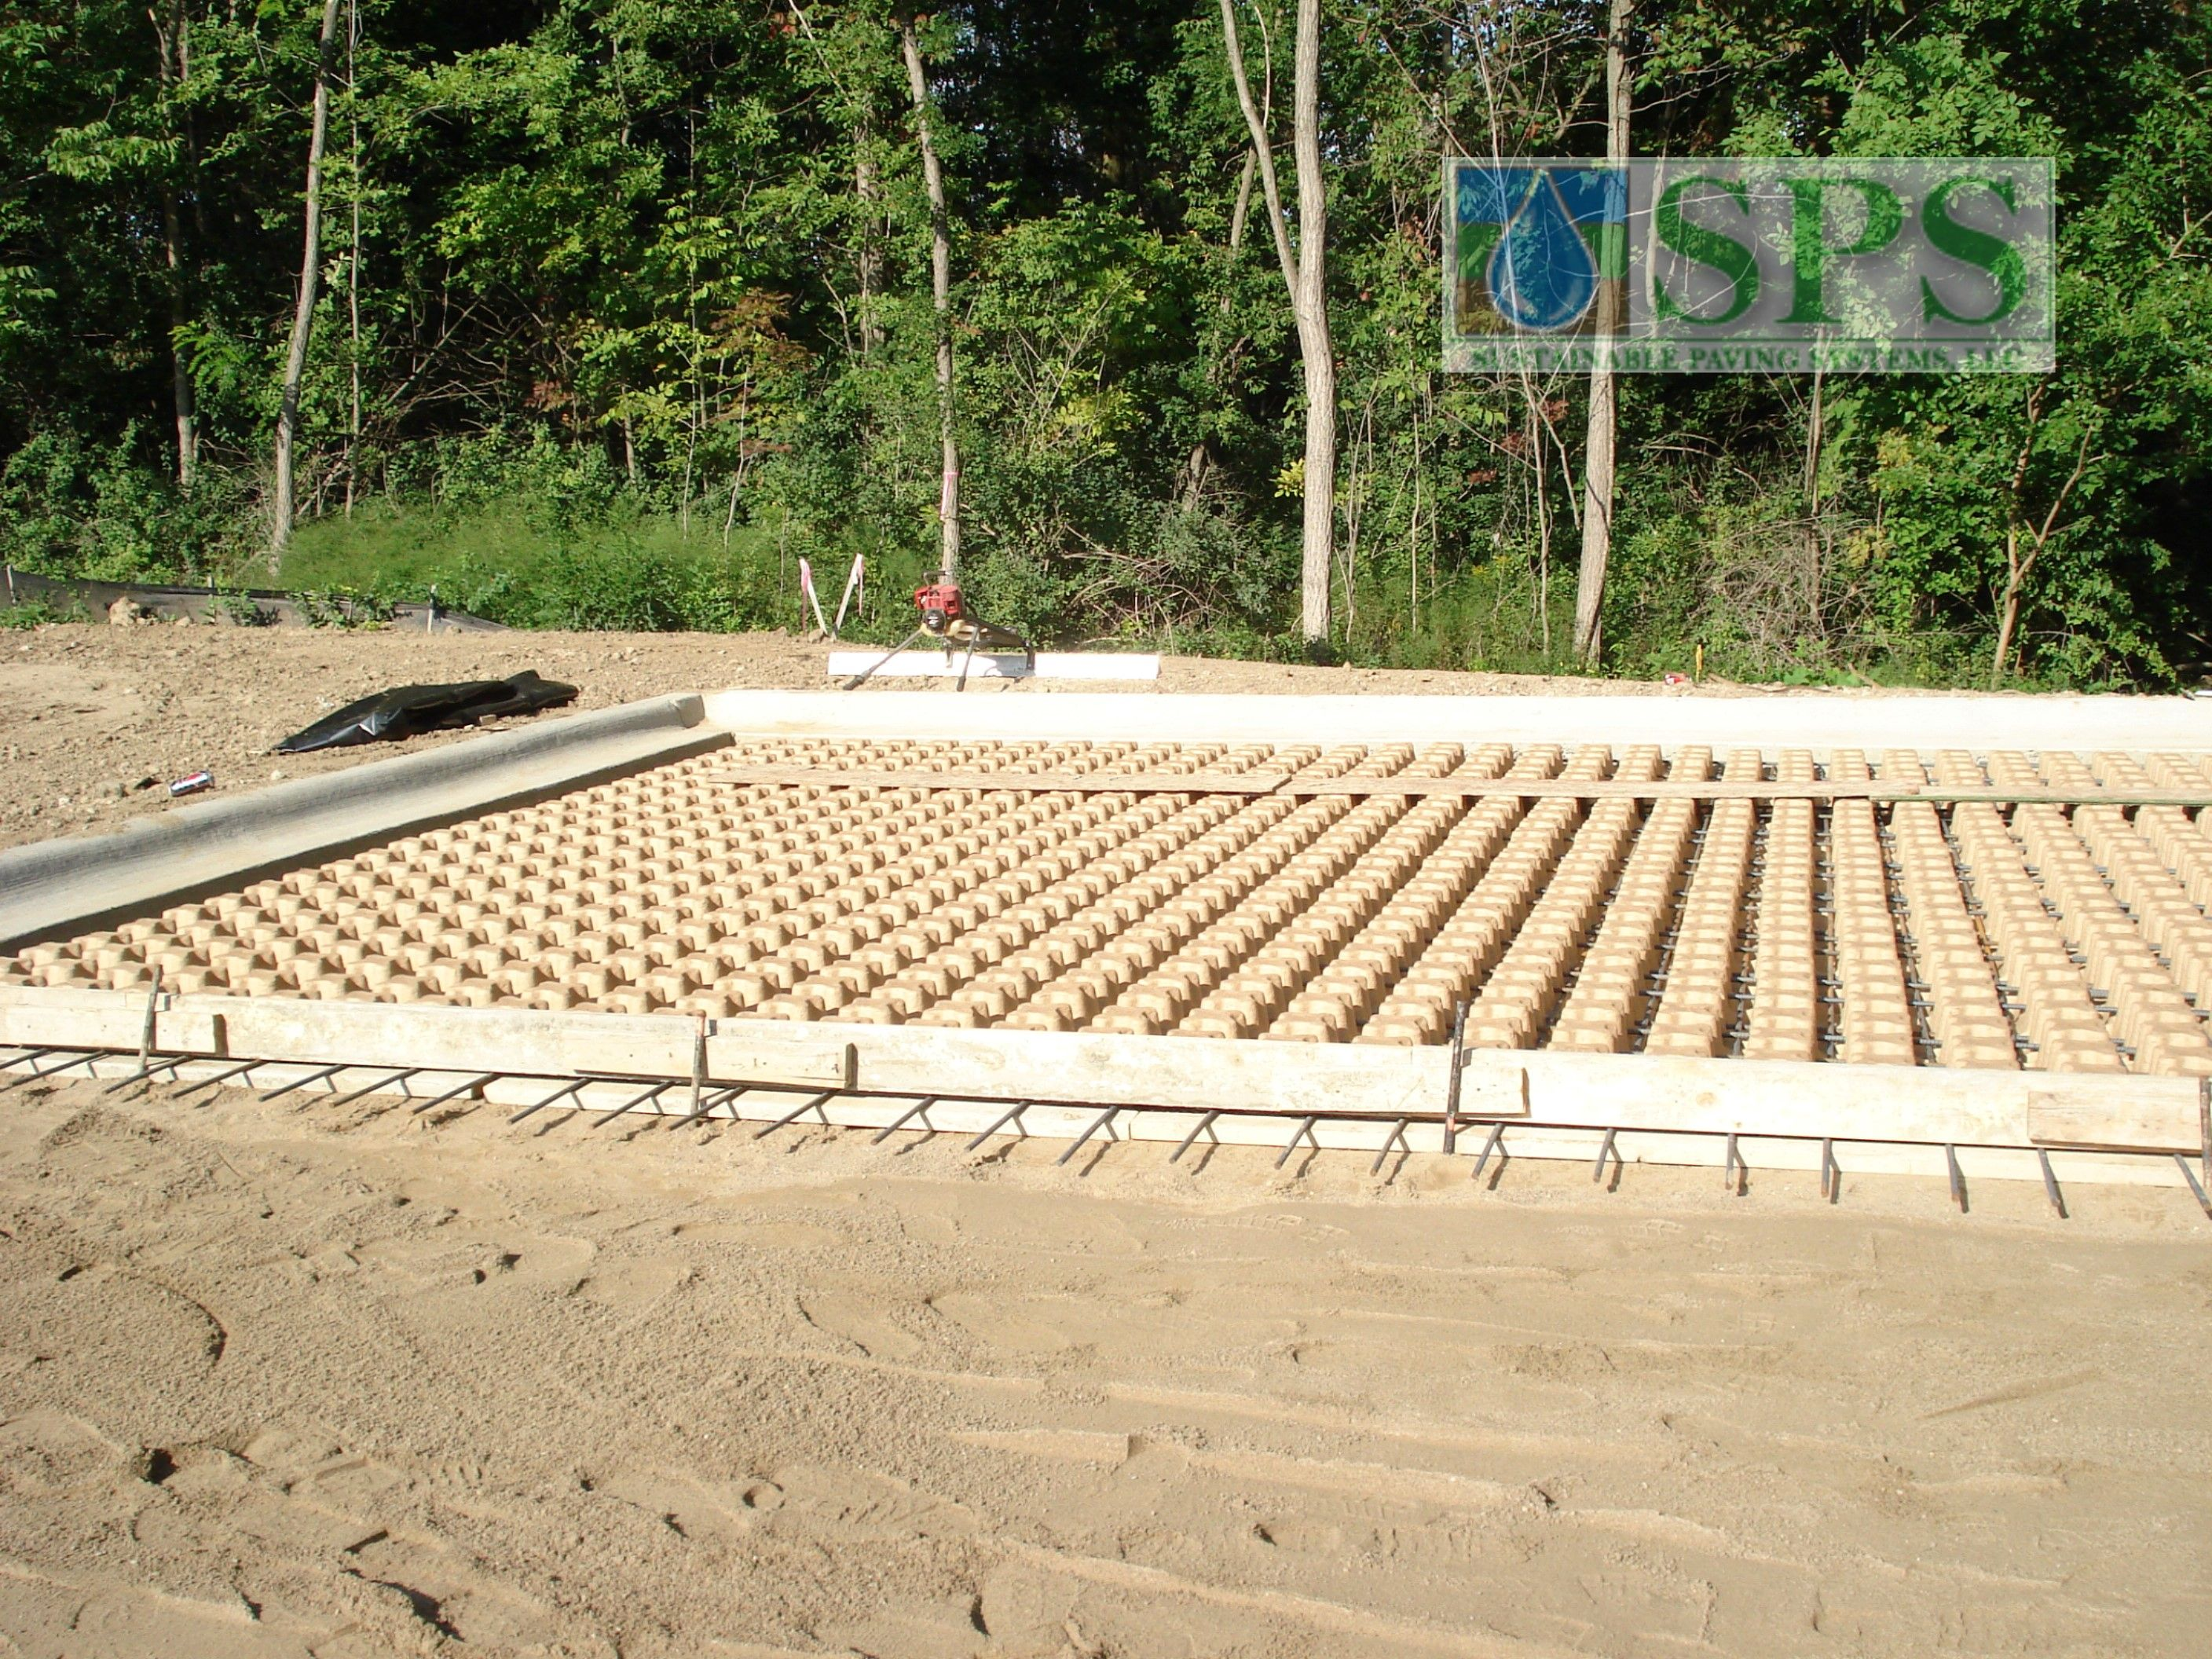 Grasscrete Stone Filled System At Regency Skilled Nursing Facility View Of Emergency Vehicle Access_21